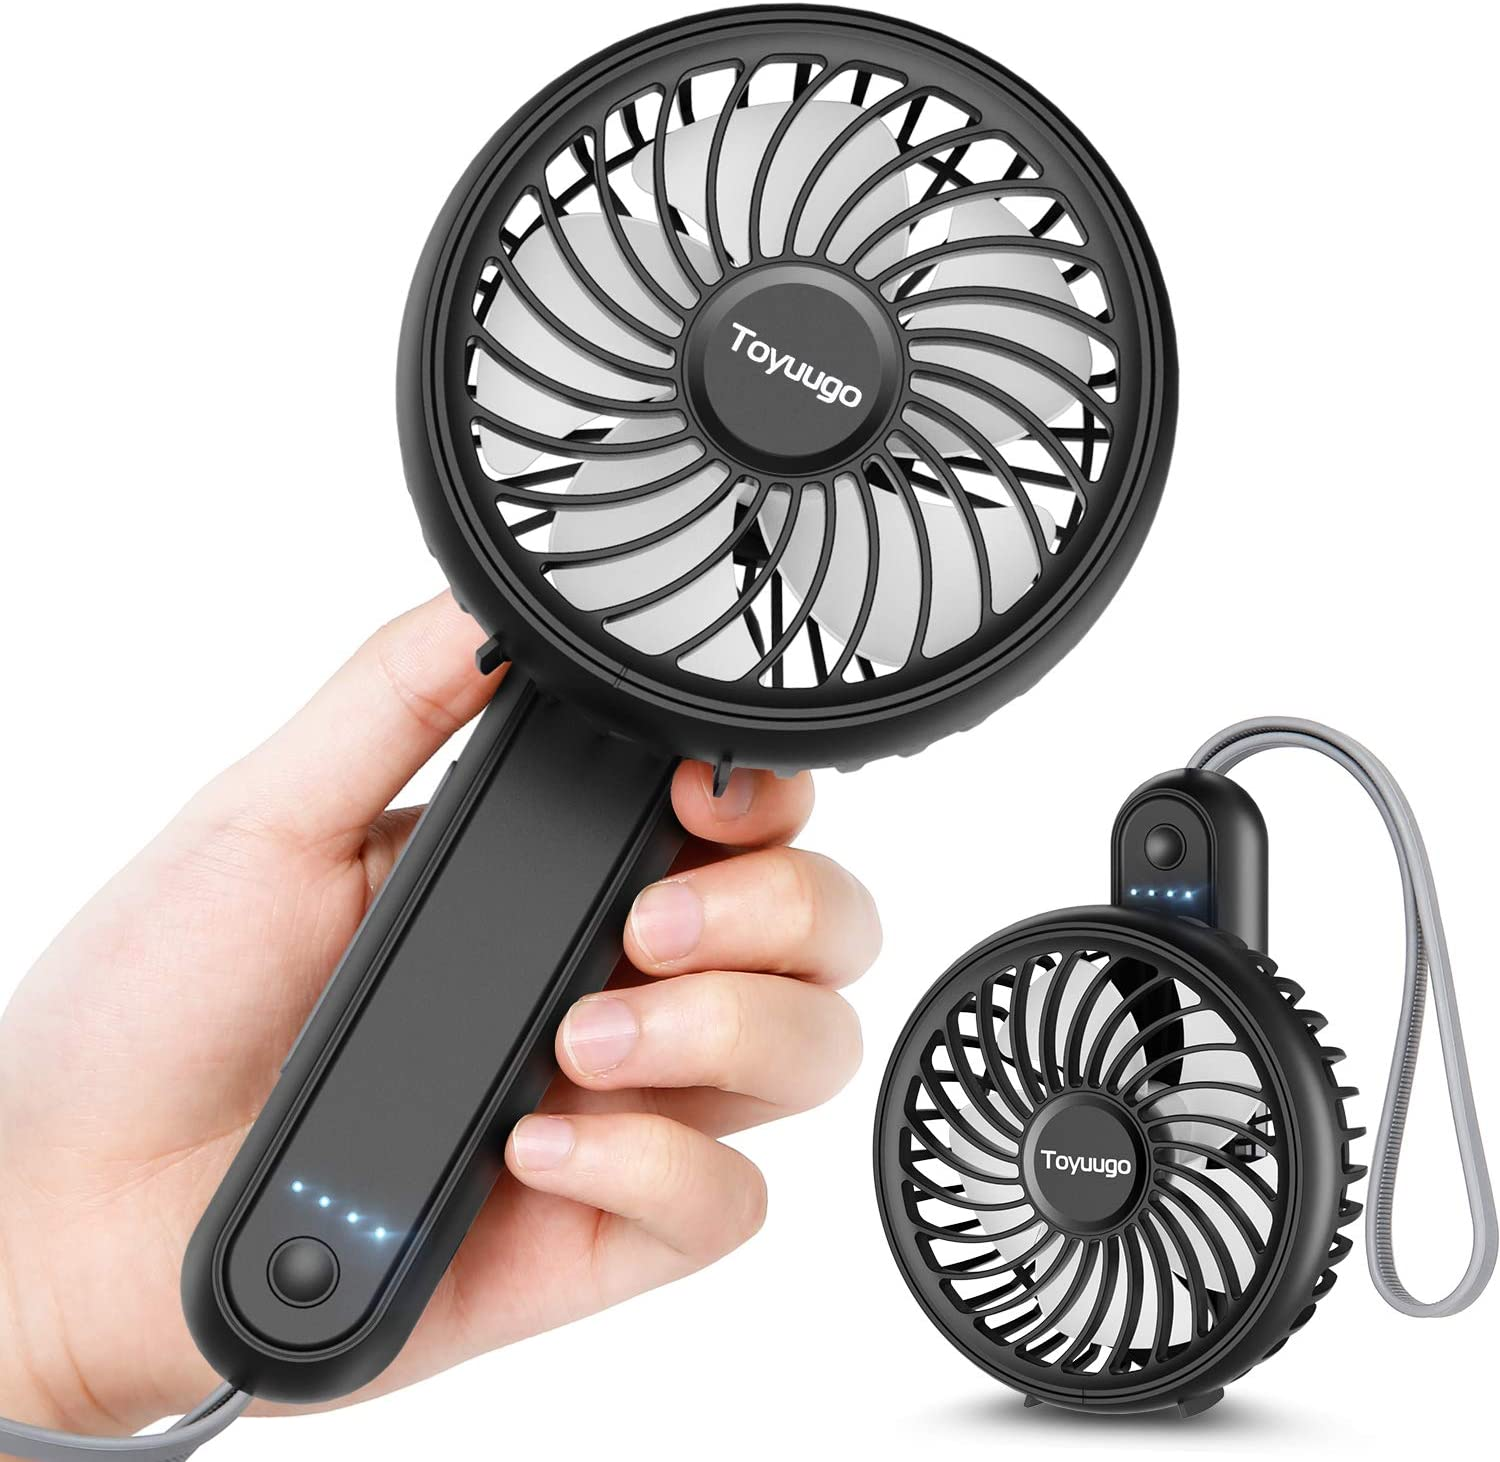 toyuugo Handheld Portable Fan, 2200 mAh 180 ° Foldable Small Fan with 3 Speeds, Rechargeable Table Fan with a Silicone Hand Strap, USB Personal Desk Fan for Office at Home Travel (Black)